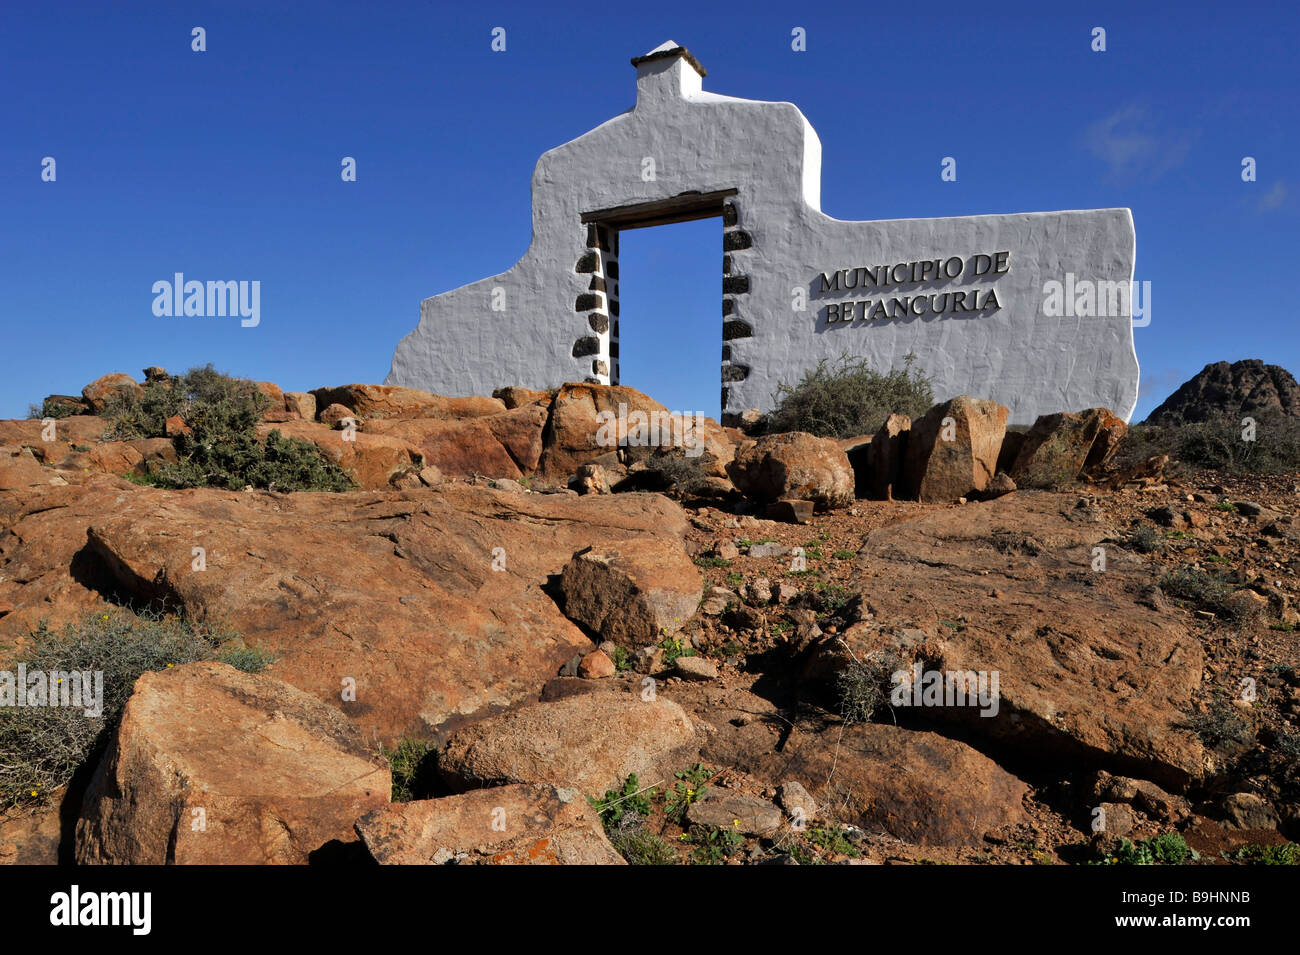 Typical border sign between provinces, Betancuria, Fuerteventura, Canary Islands, Spain, Europe - Stock Image